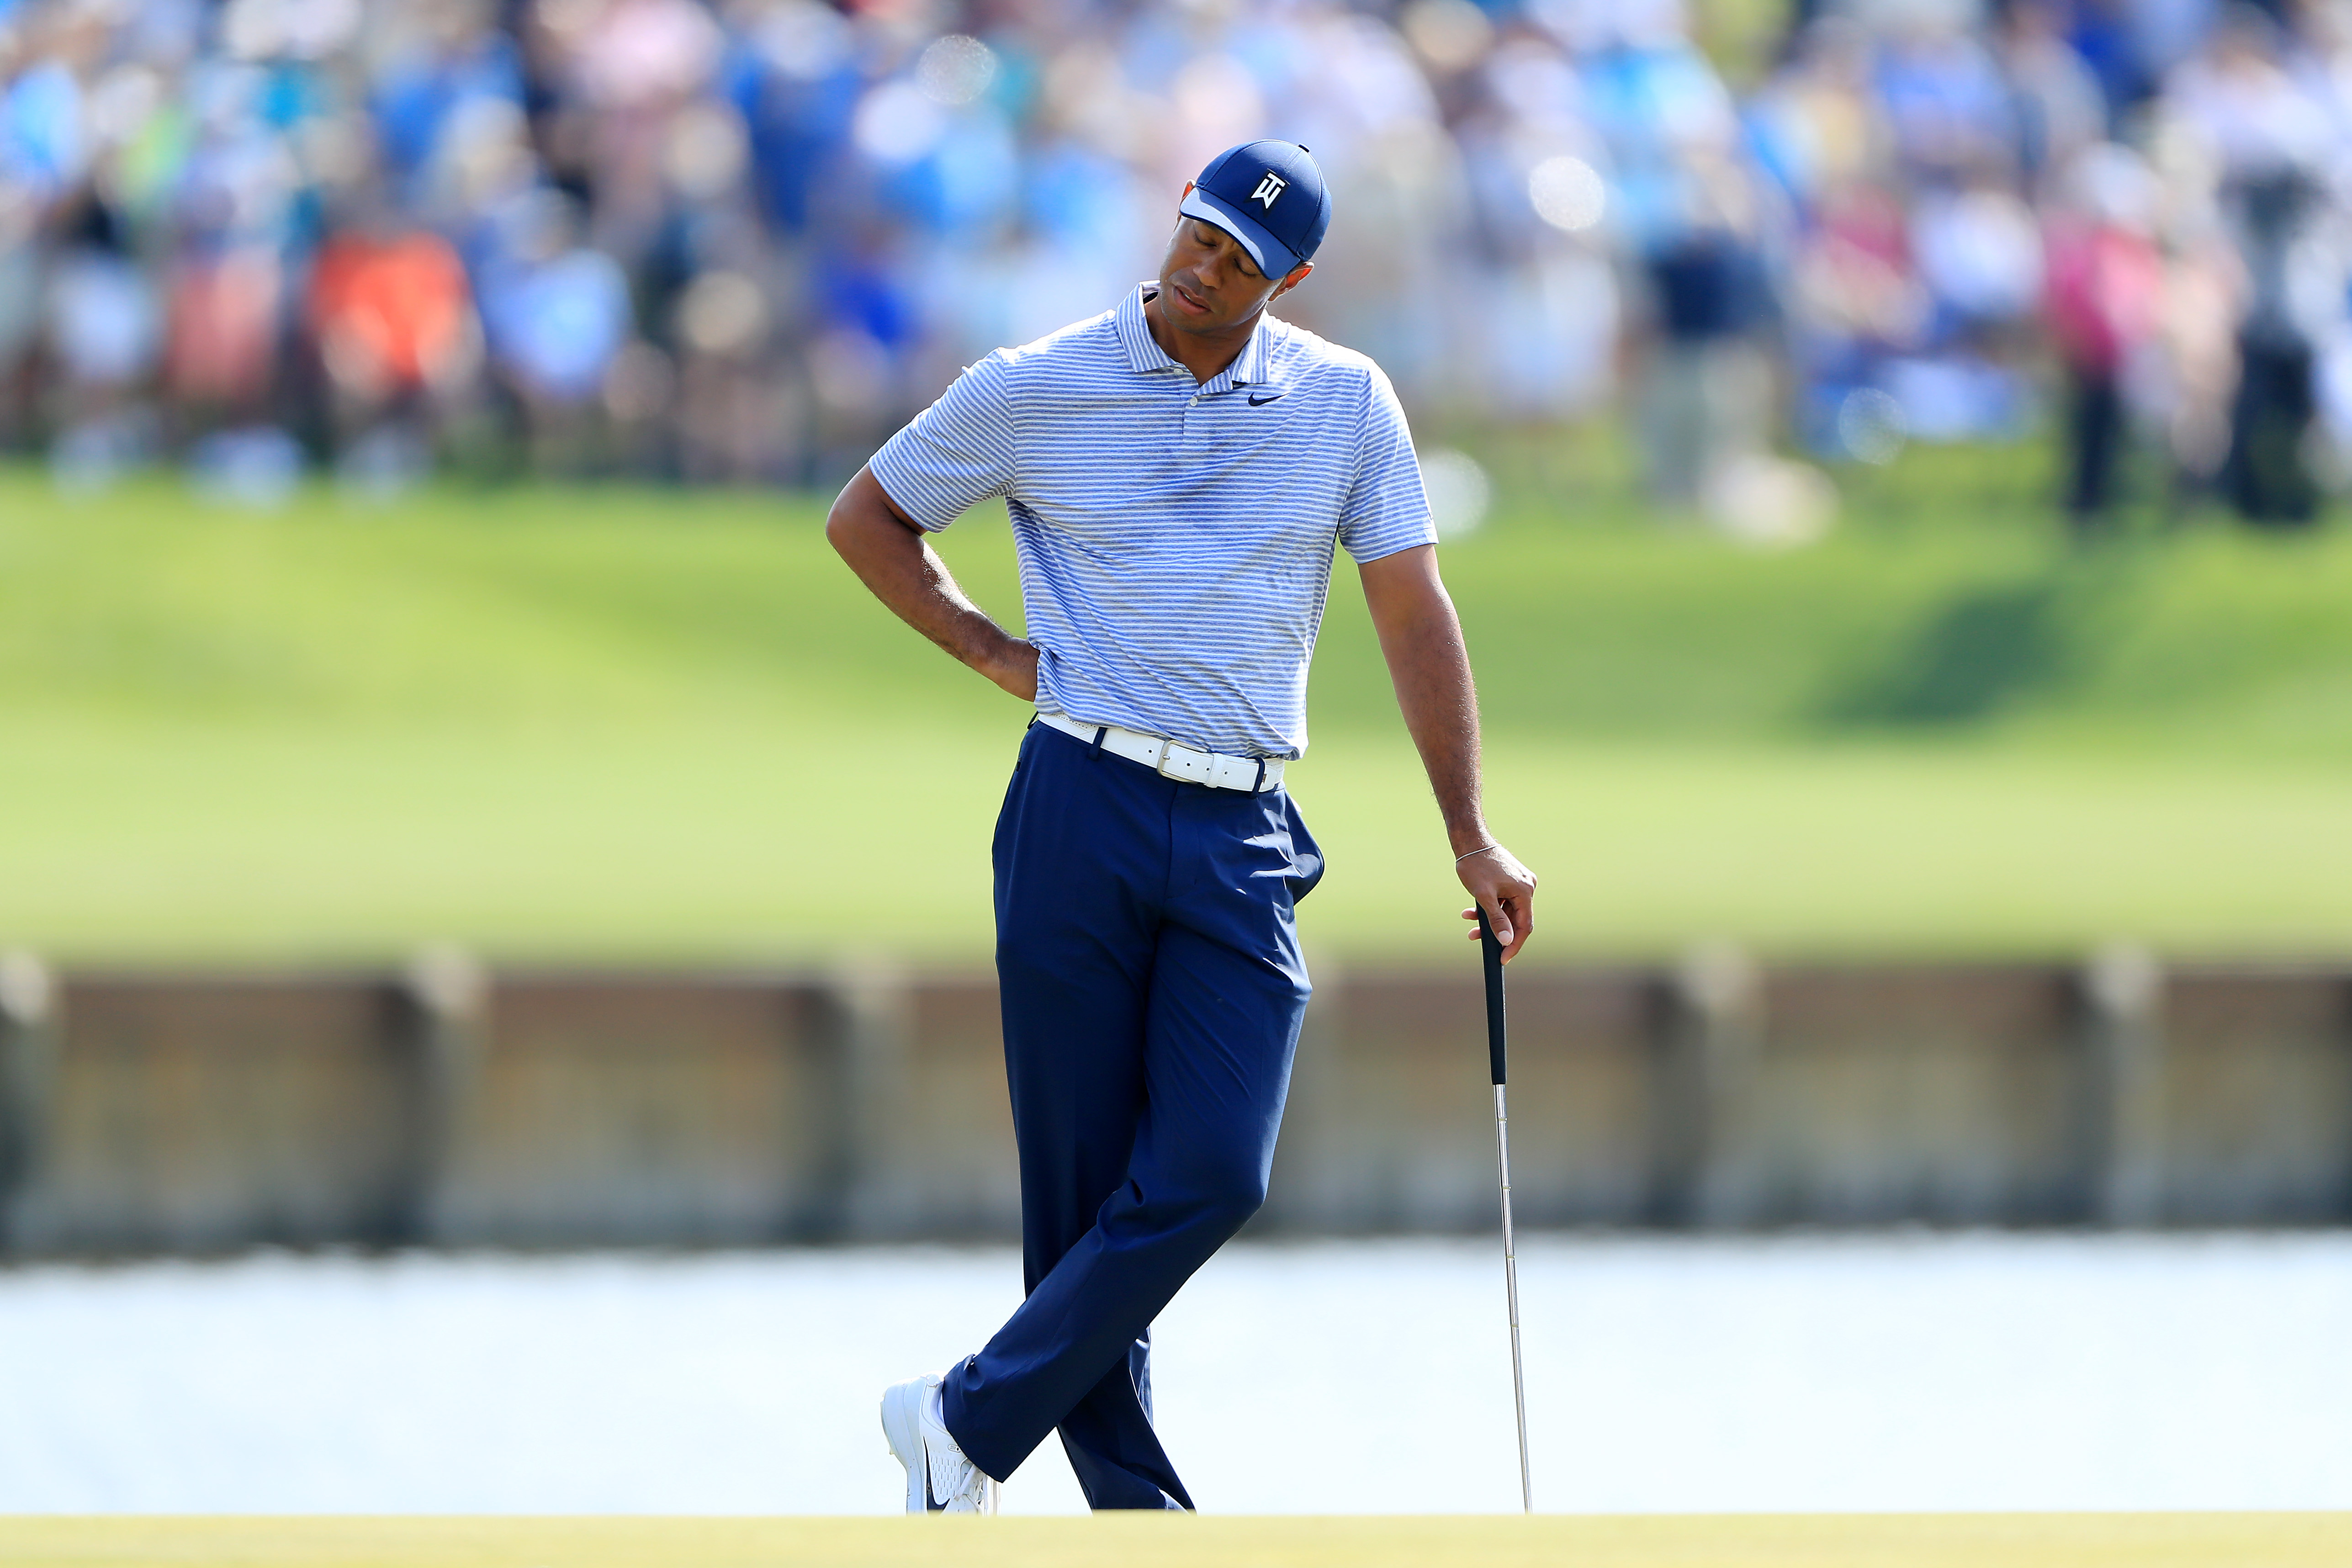 2019 Players Championship: Tiger Woods fails to use golf's new rules, costing him multiple shots